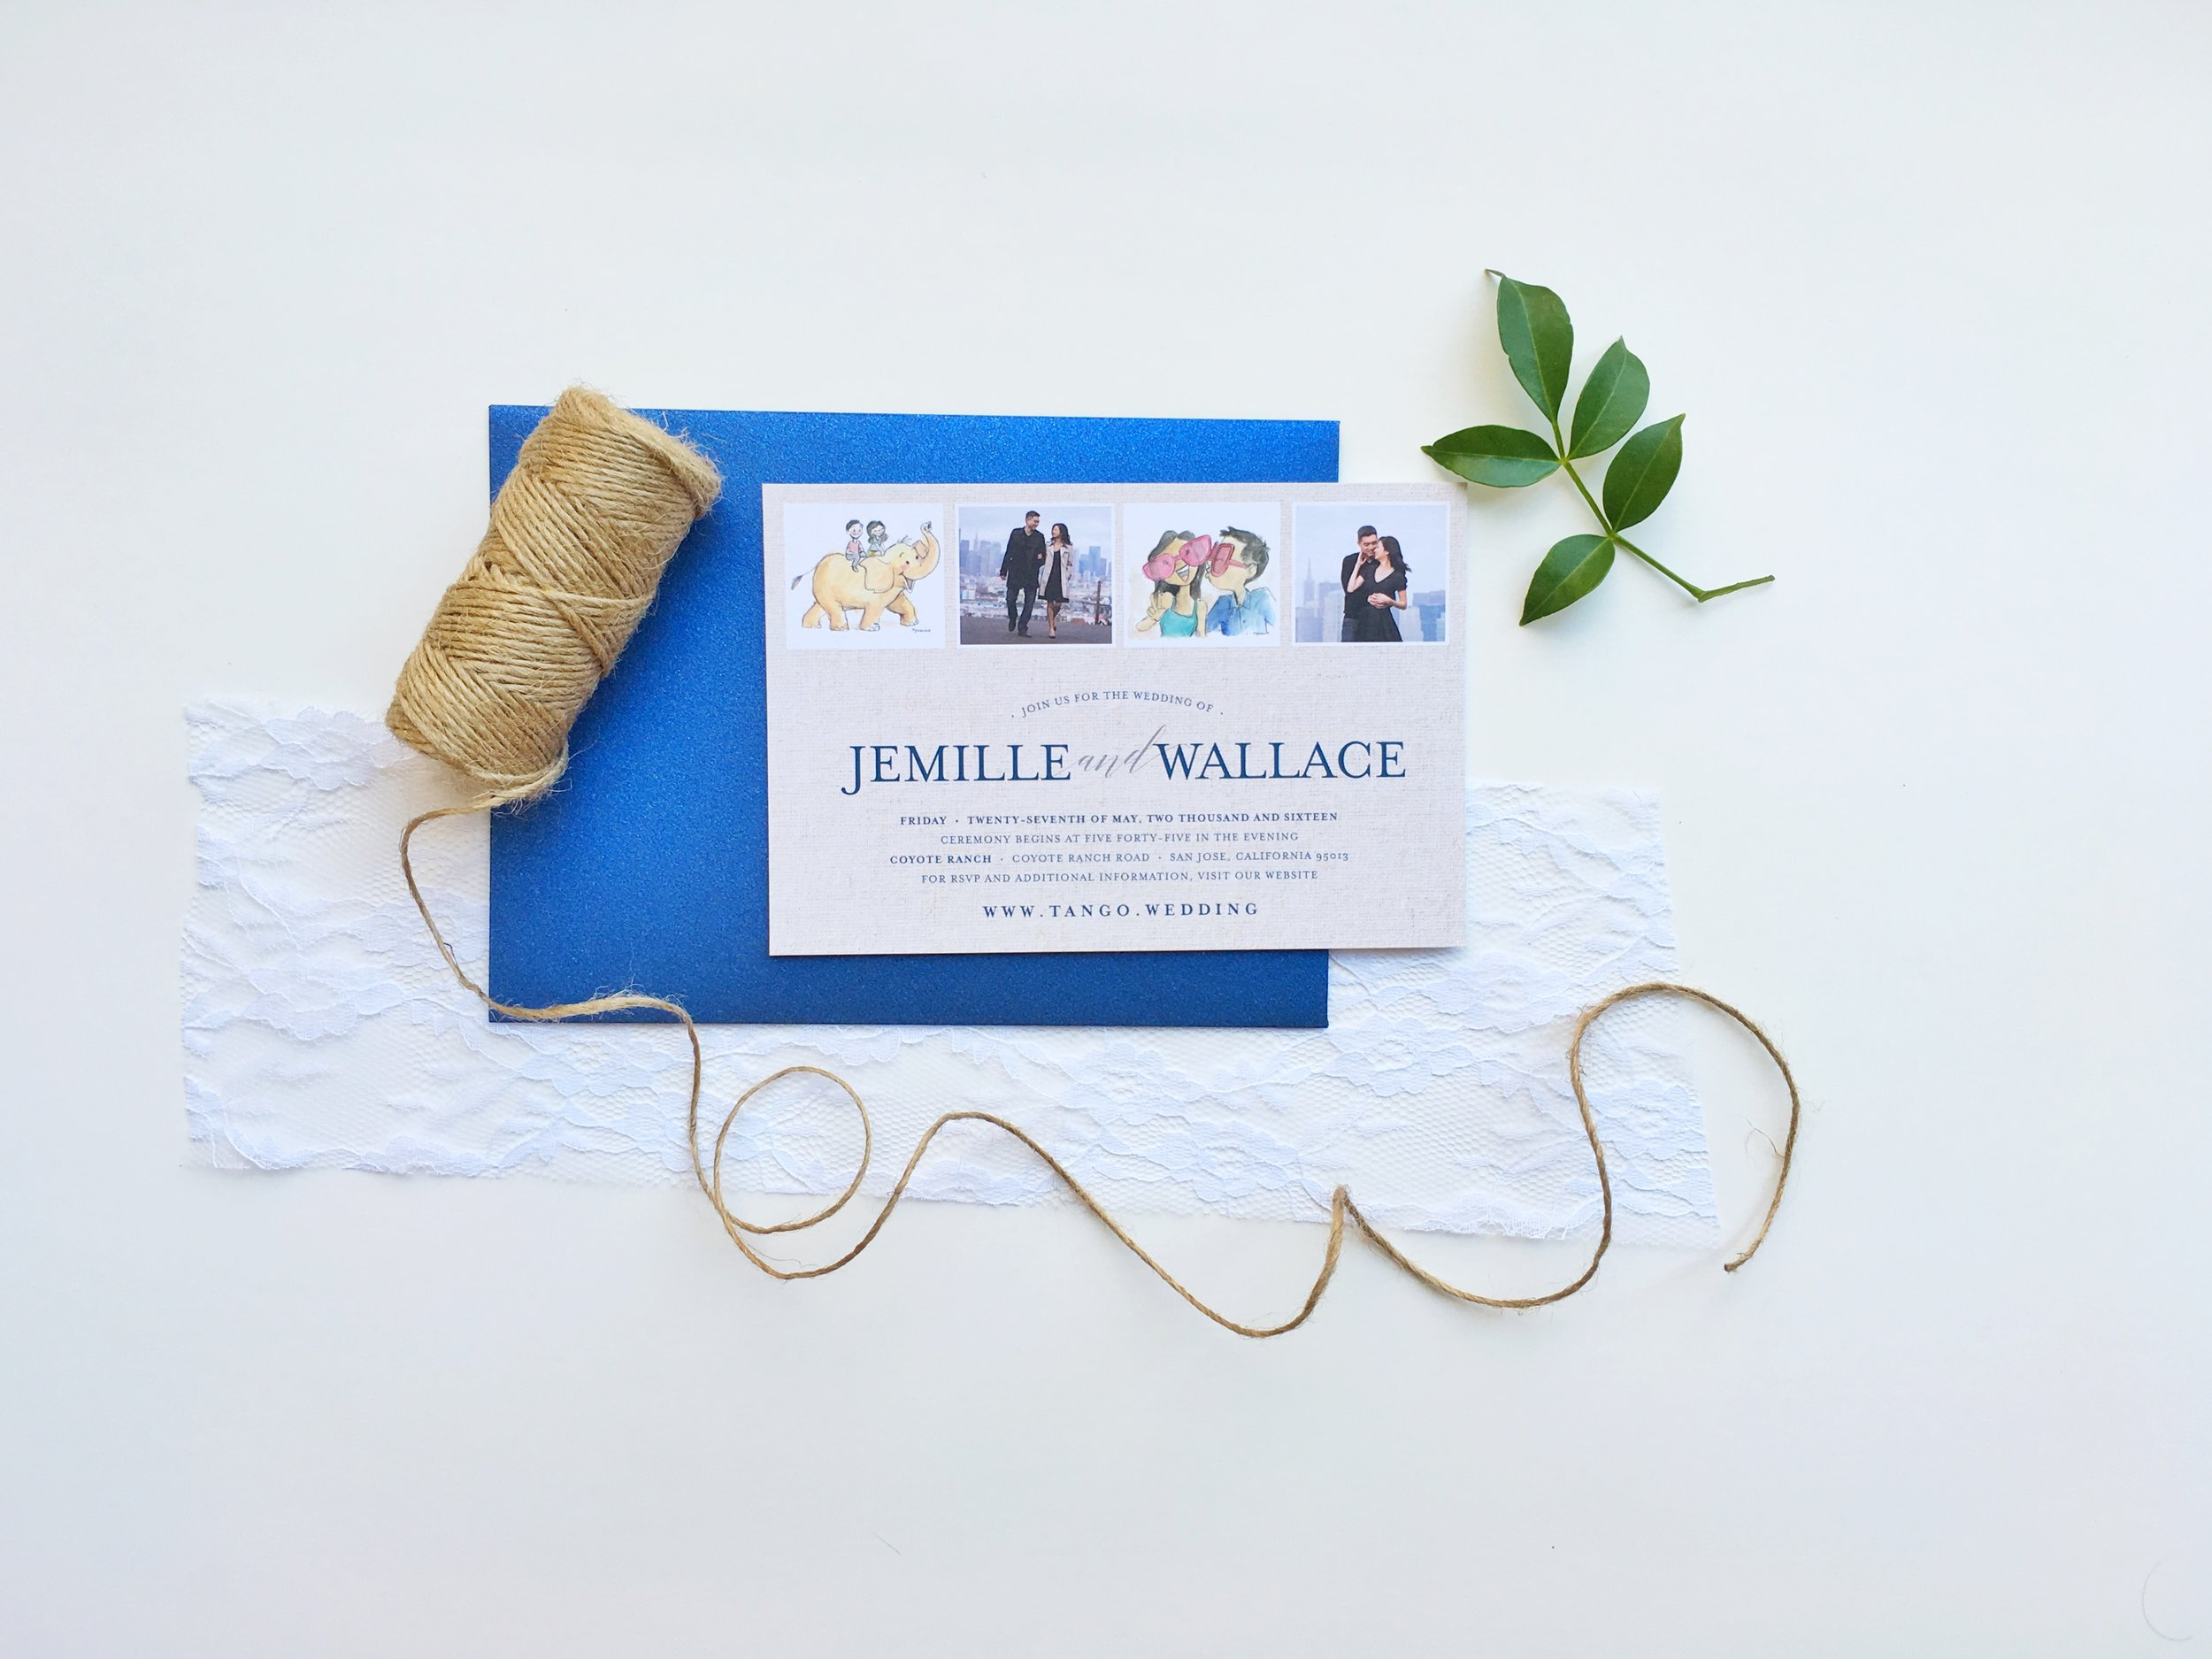 Jemille and Wallace Rustic Photostrip Wedding Invitation